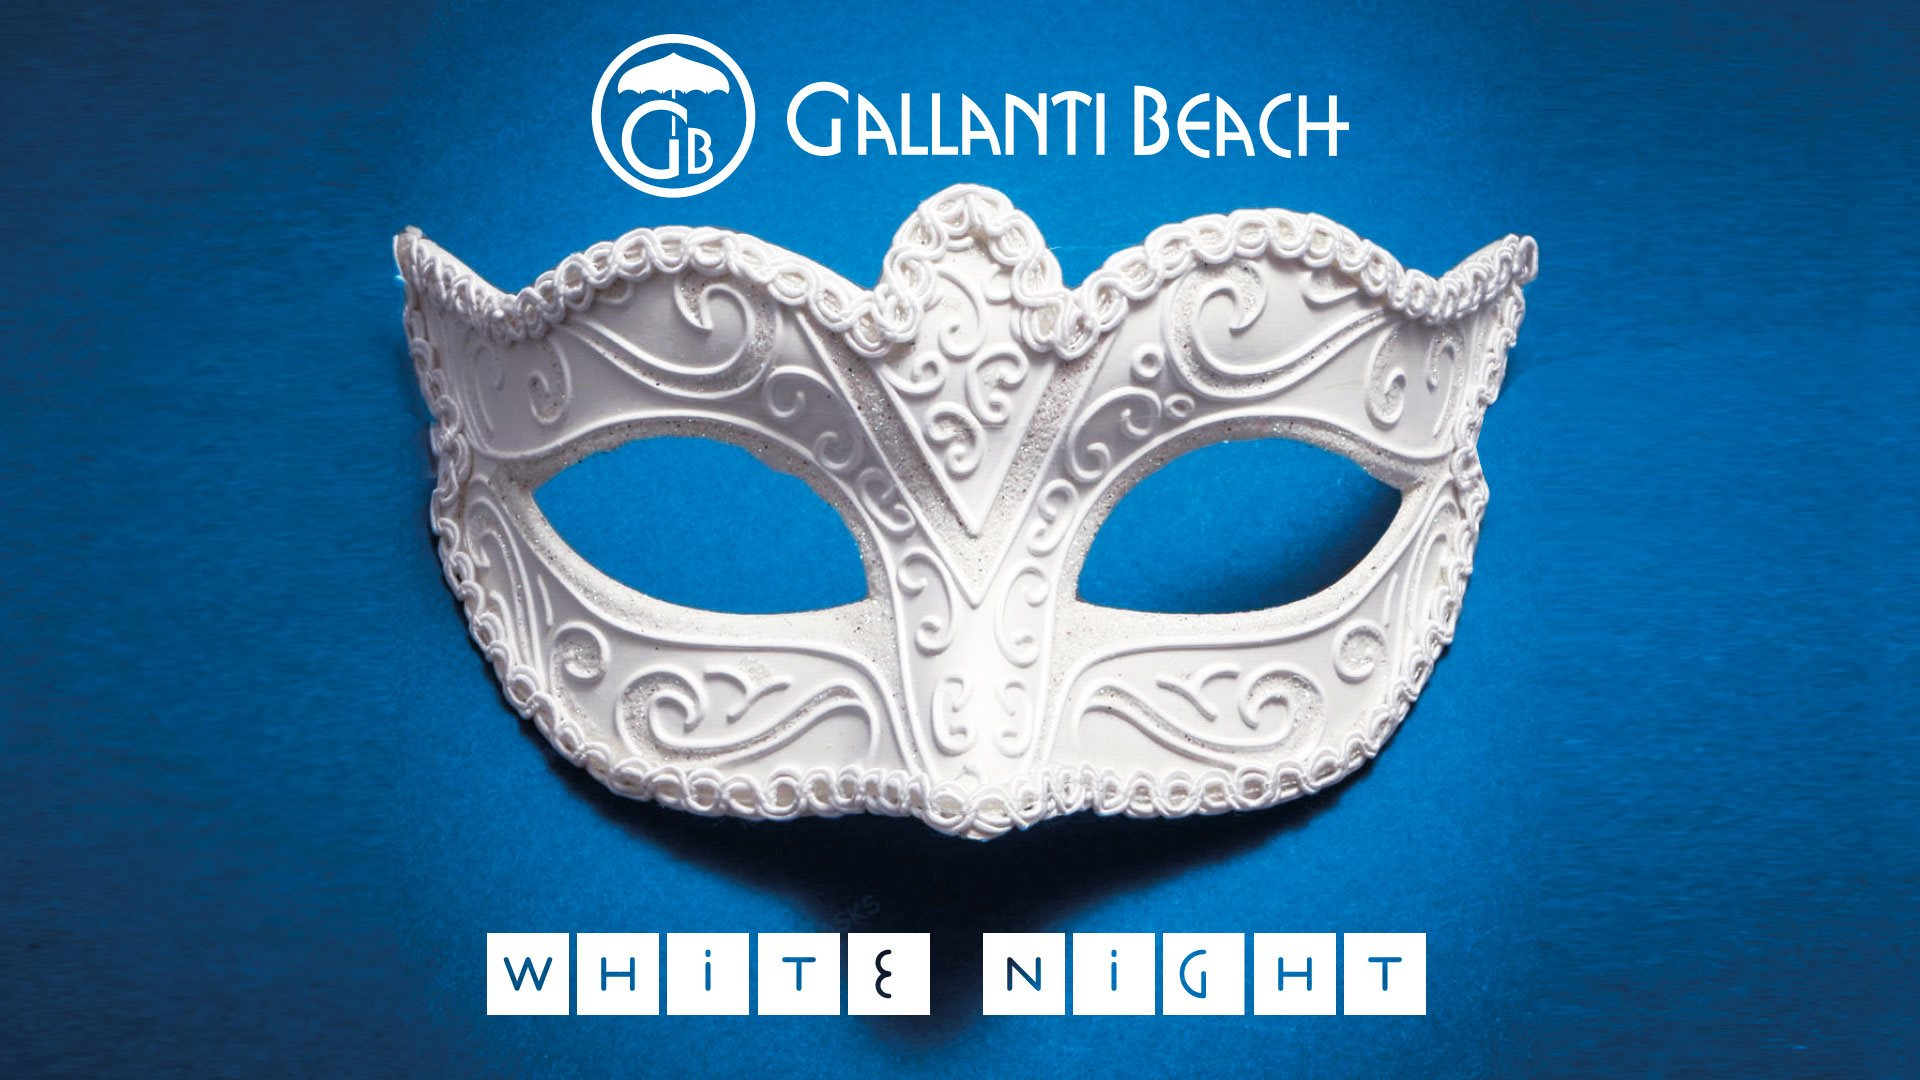 WHITE NIGHT al Gallanti Beach Serata a tema